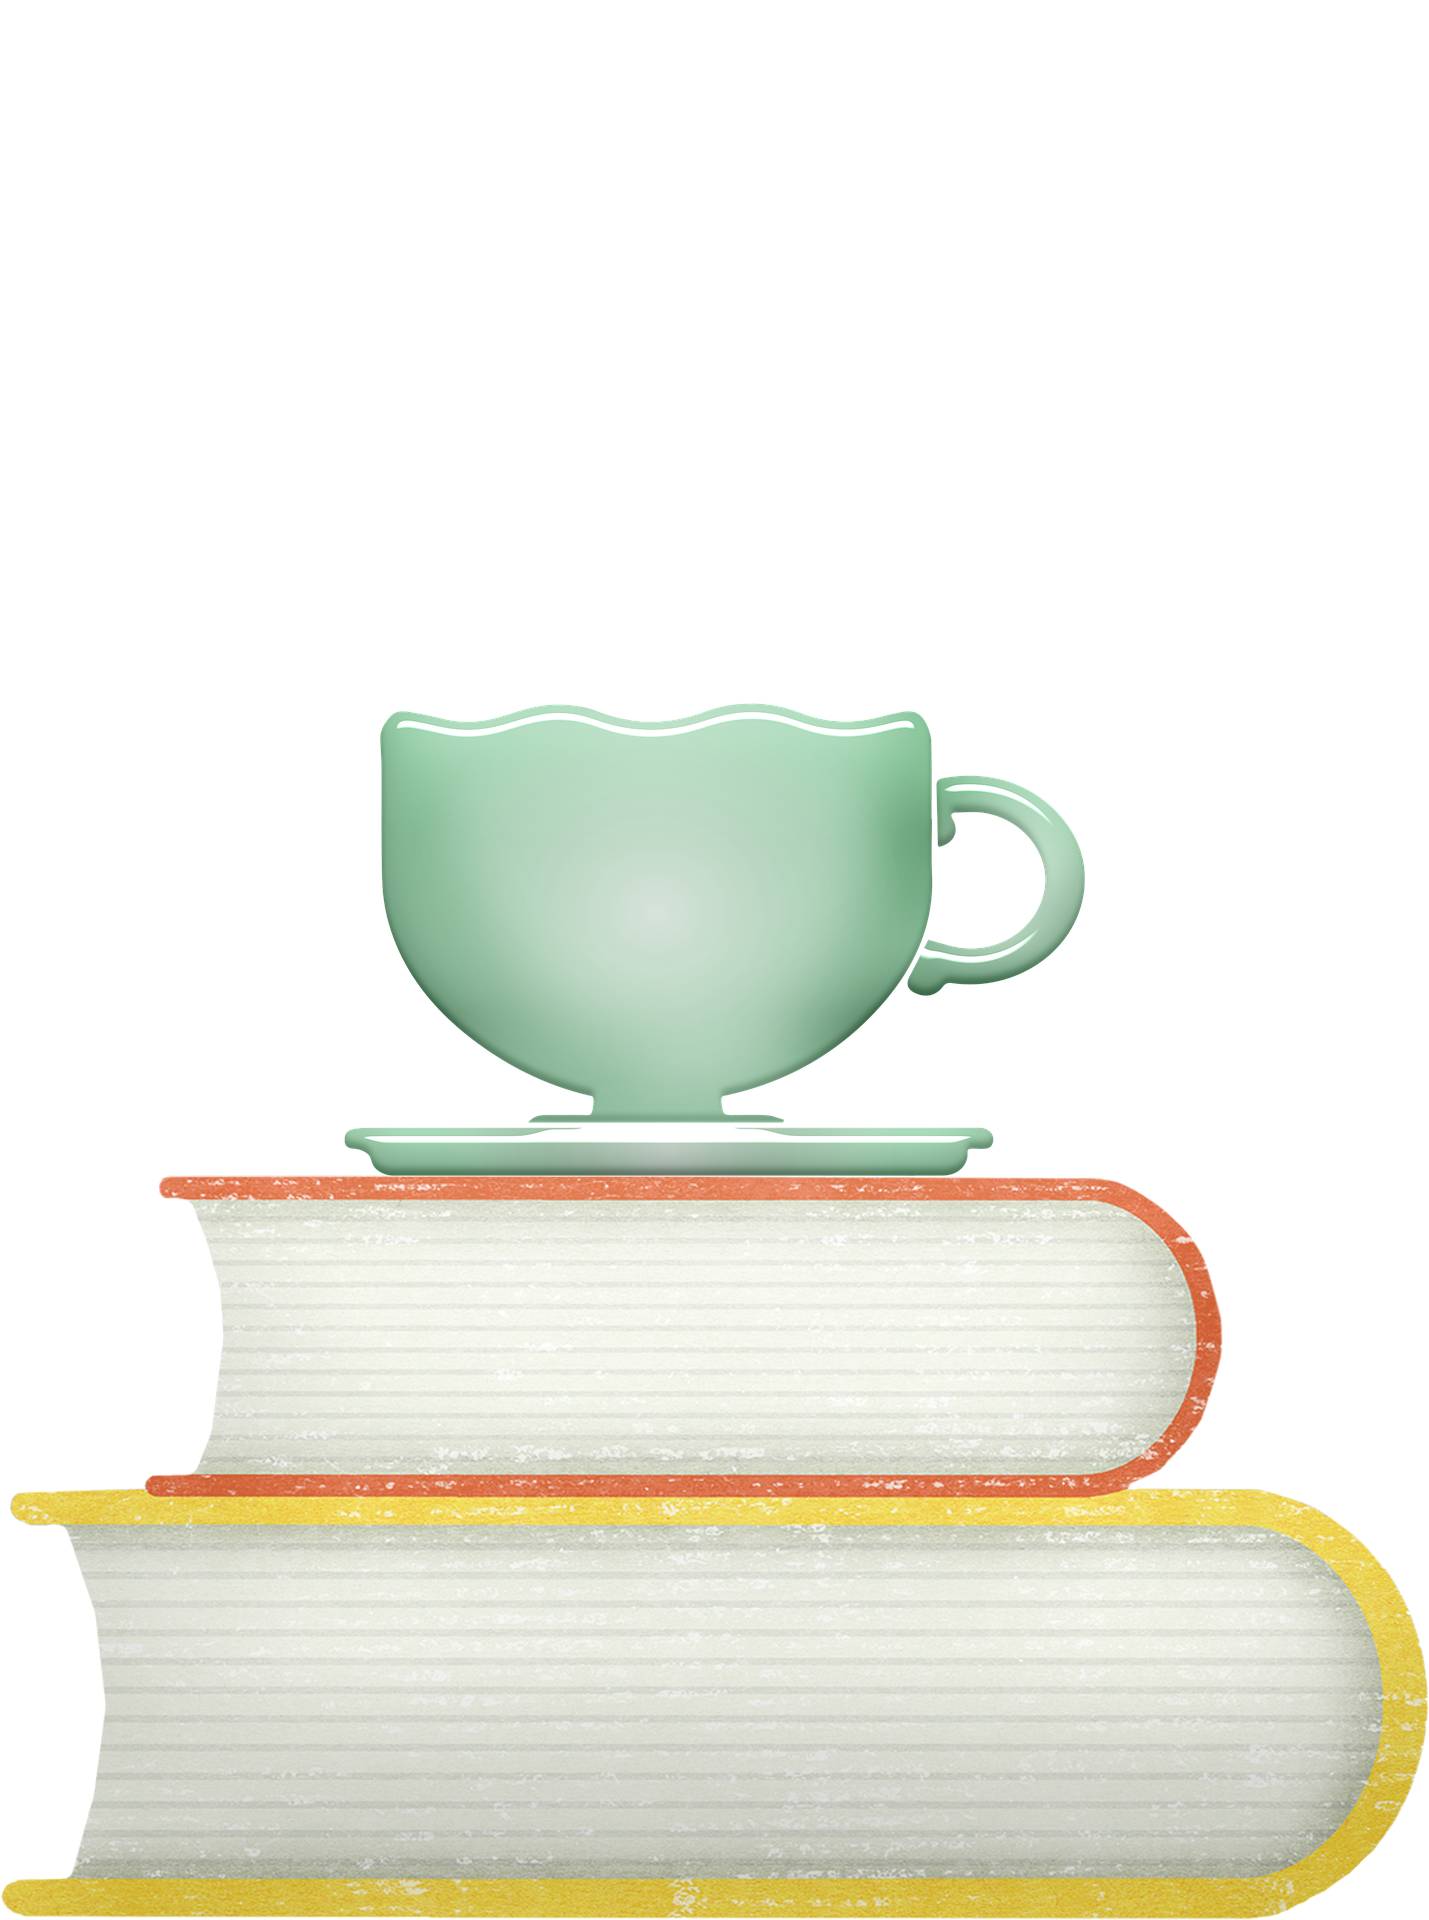 teacup on a stack of books